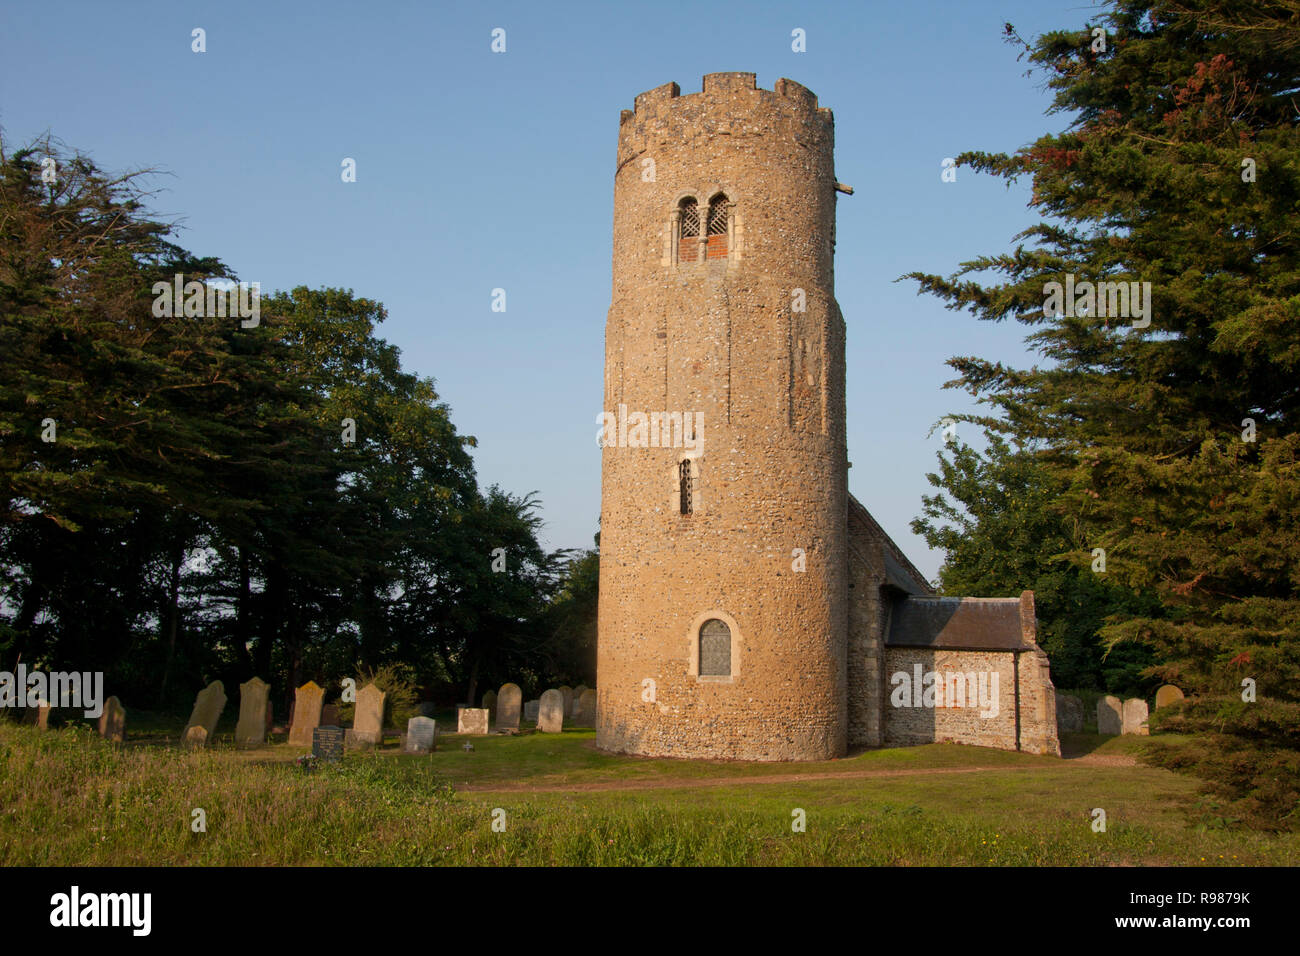 St Matthews Church, Thorpe, nr Haddiscoe, Suffolk, East Anglia - Stock Image